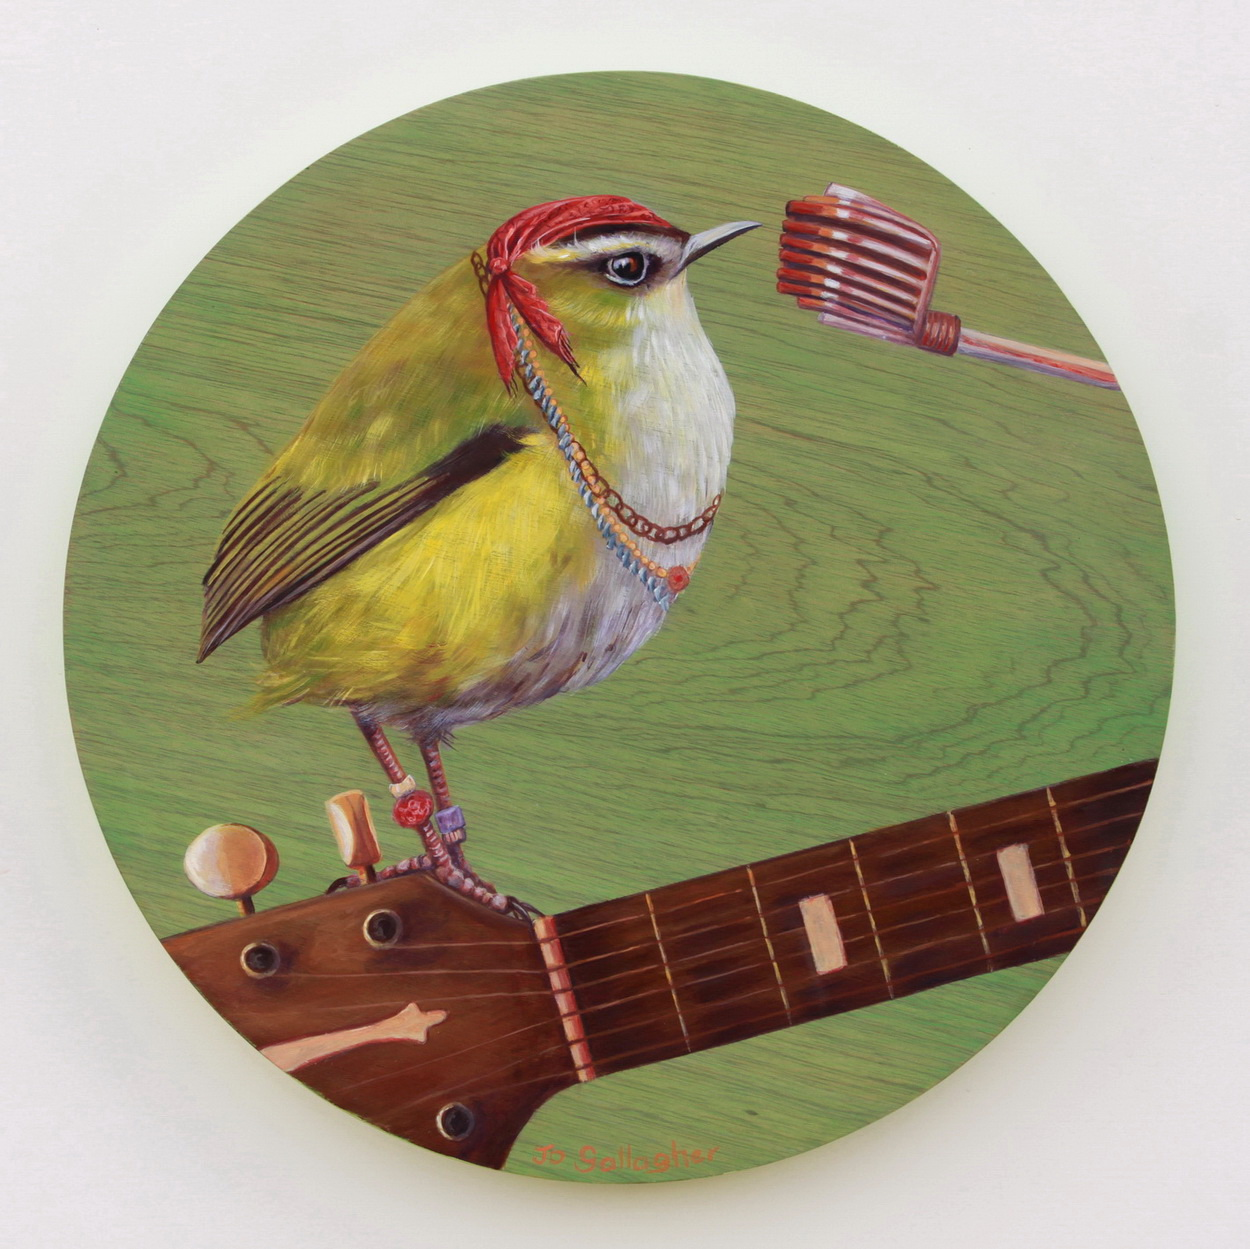 The Rock Wren